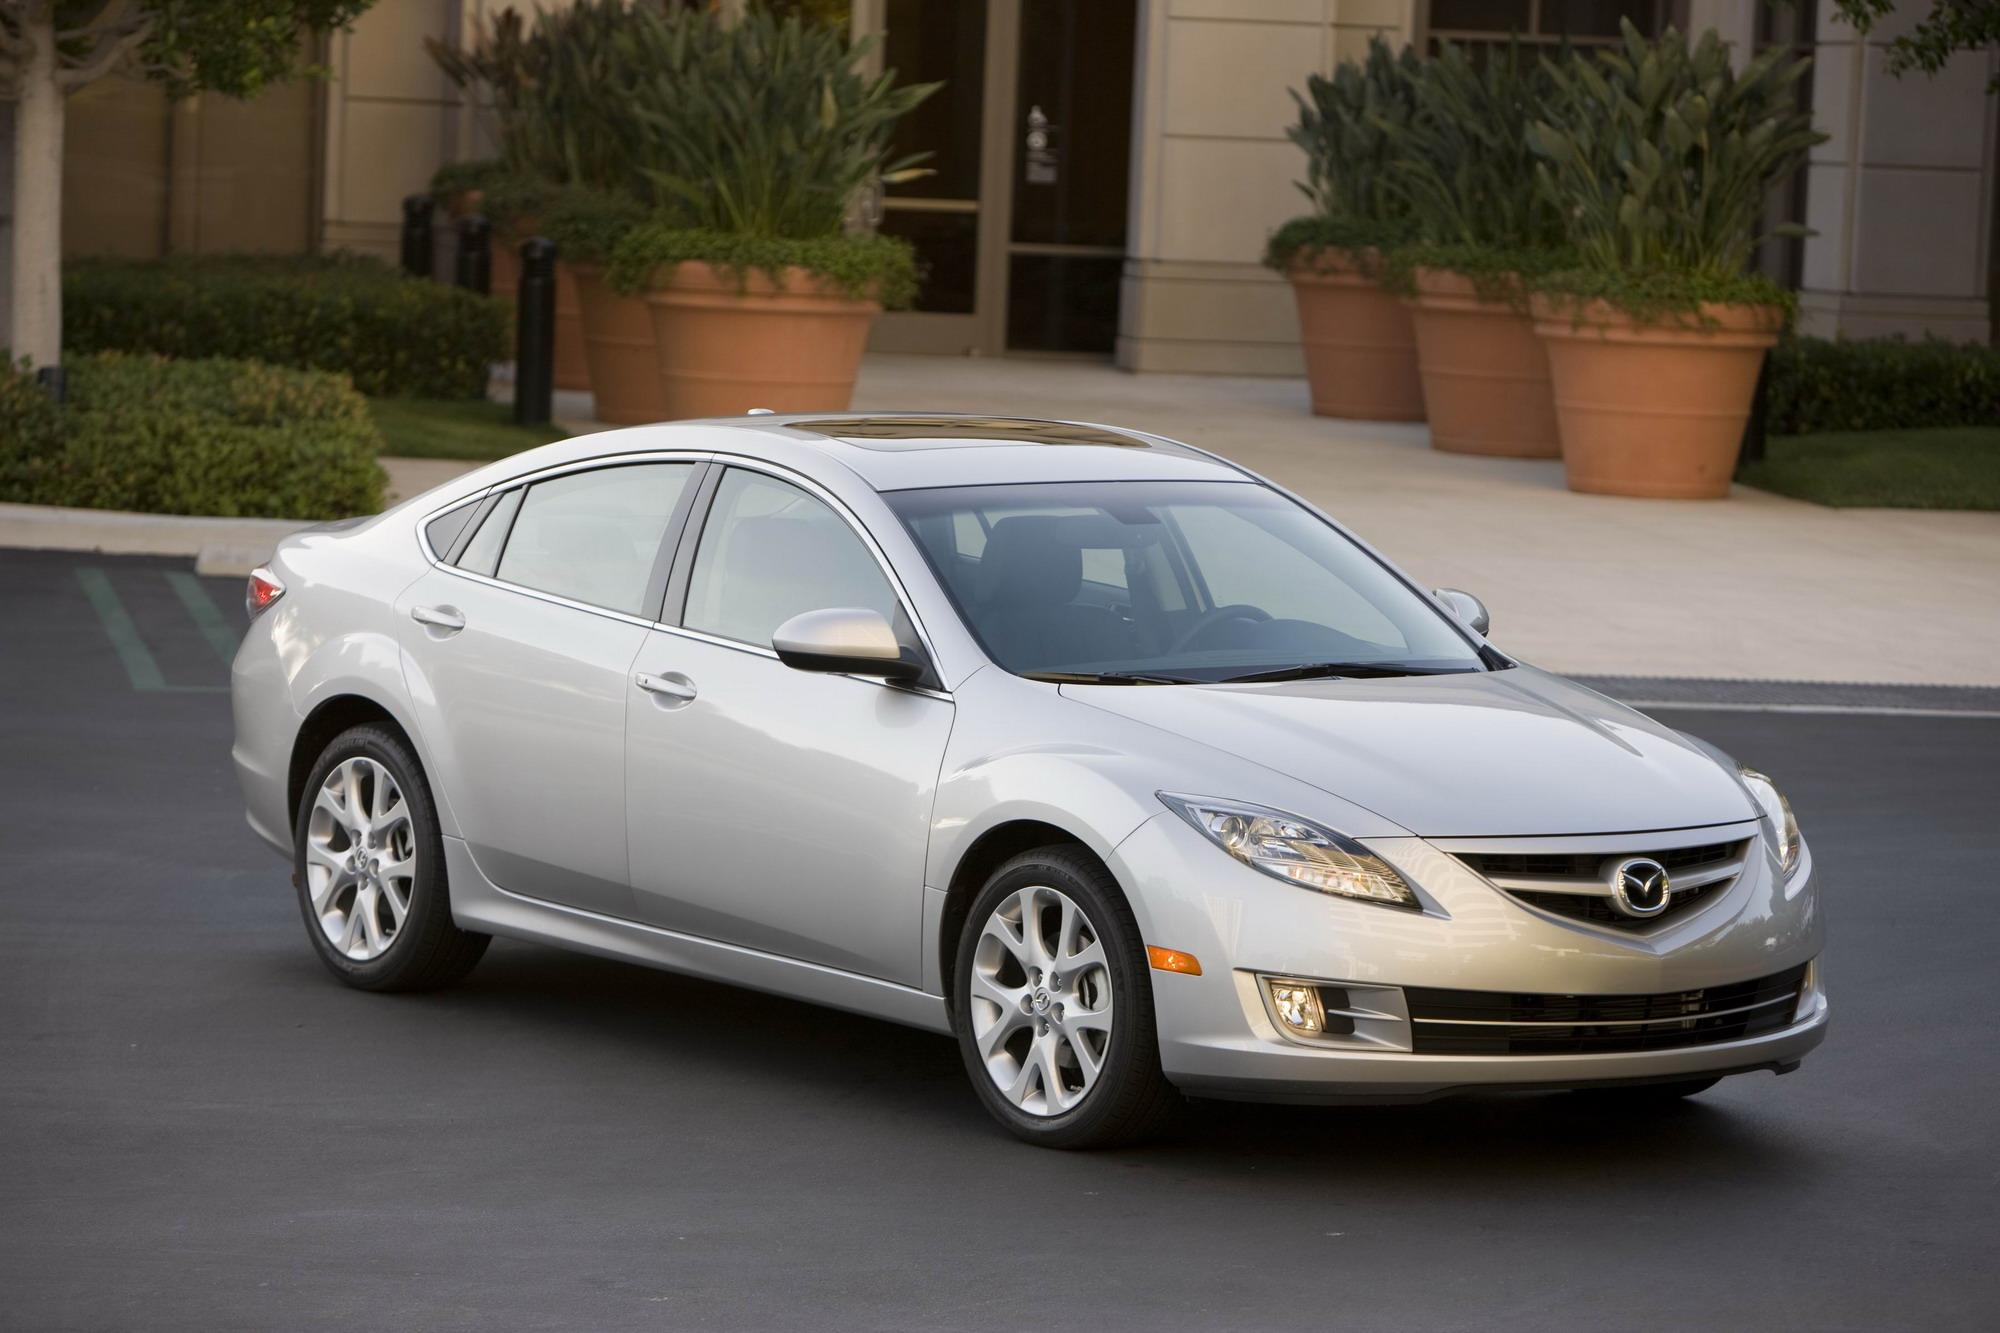 2010 mazda6 review top speed. Black Bedroom Furniture Sets. Home Design Ideas